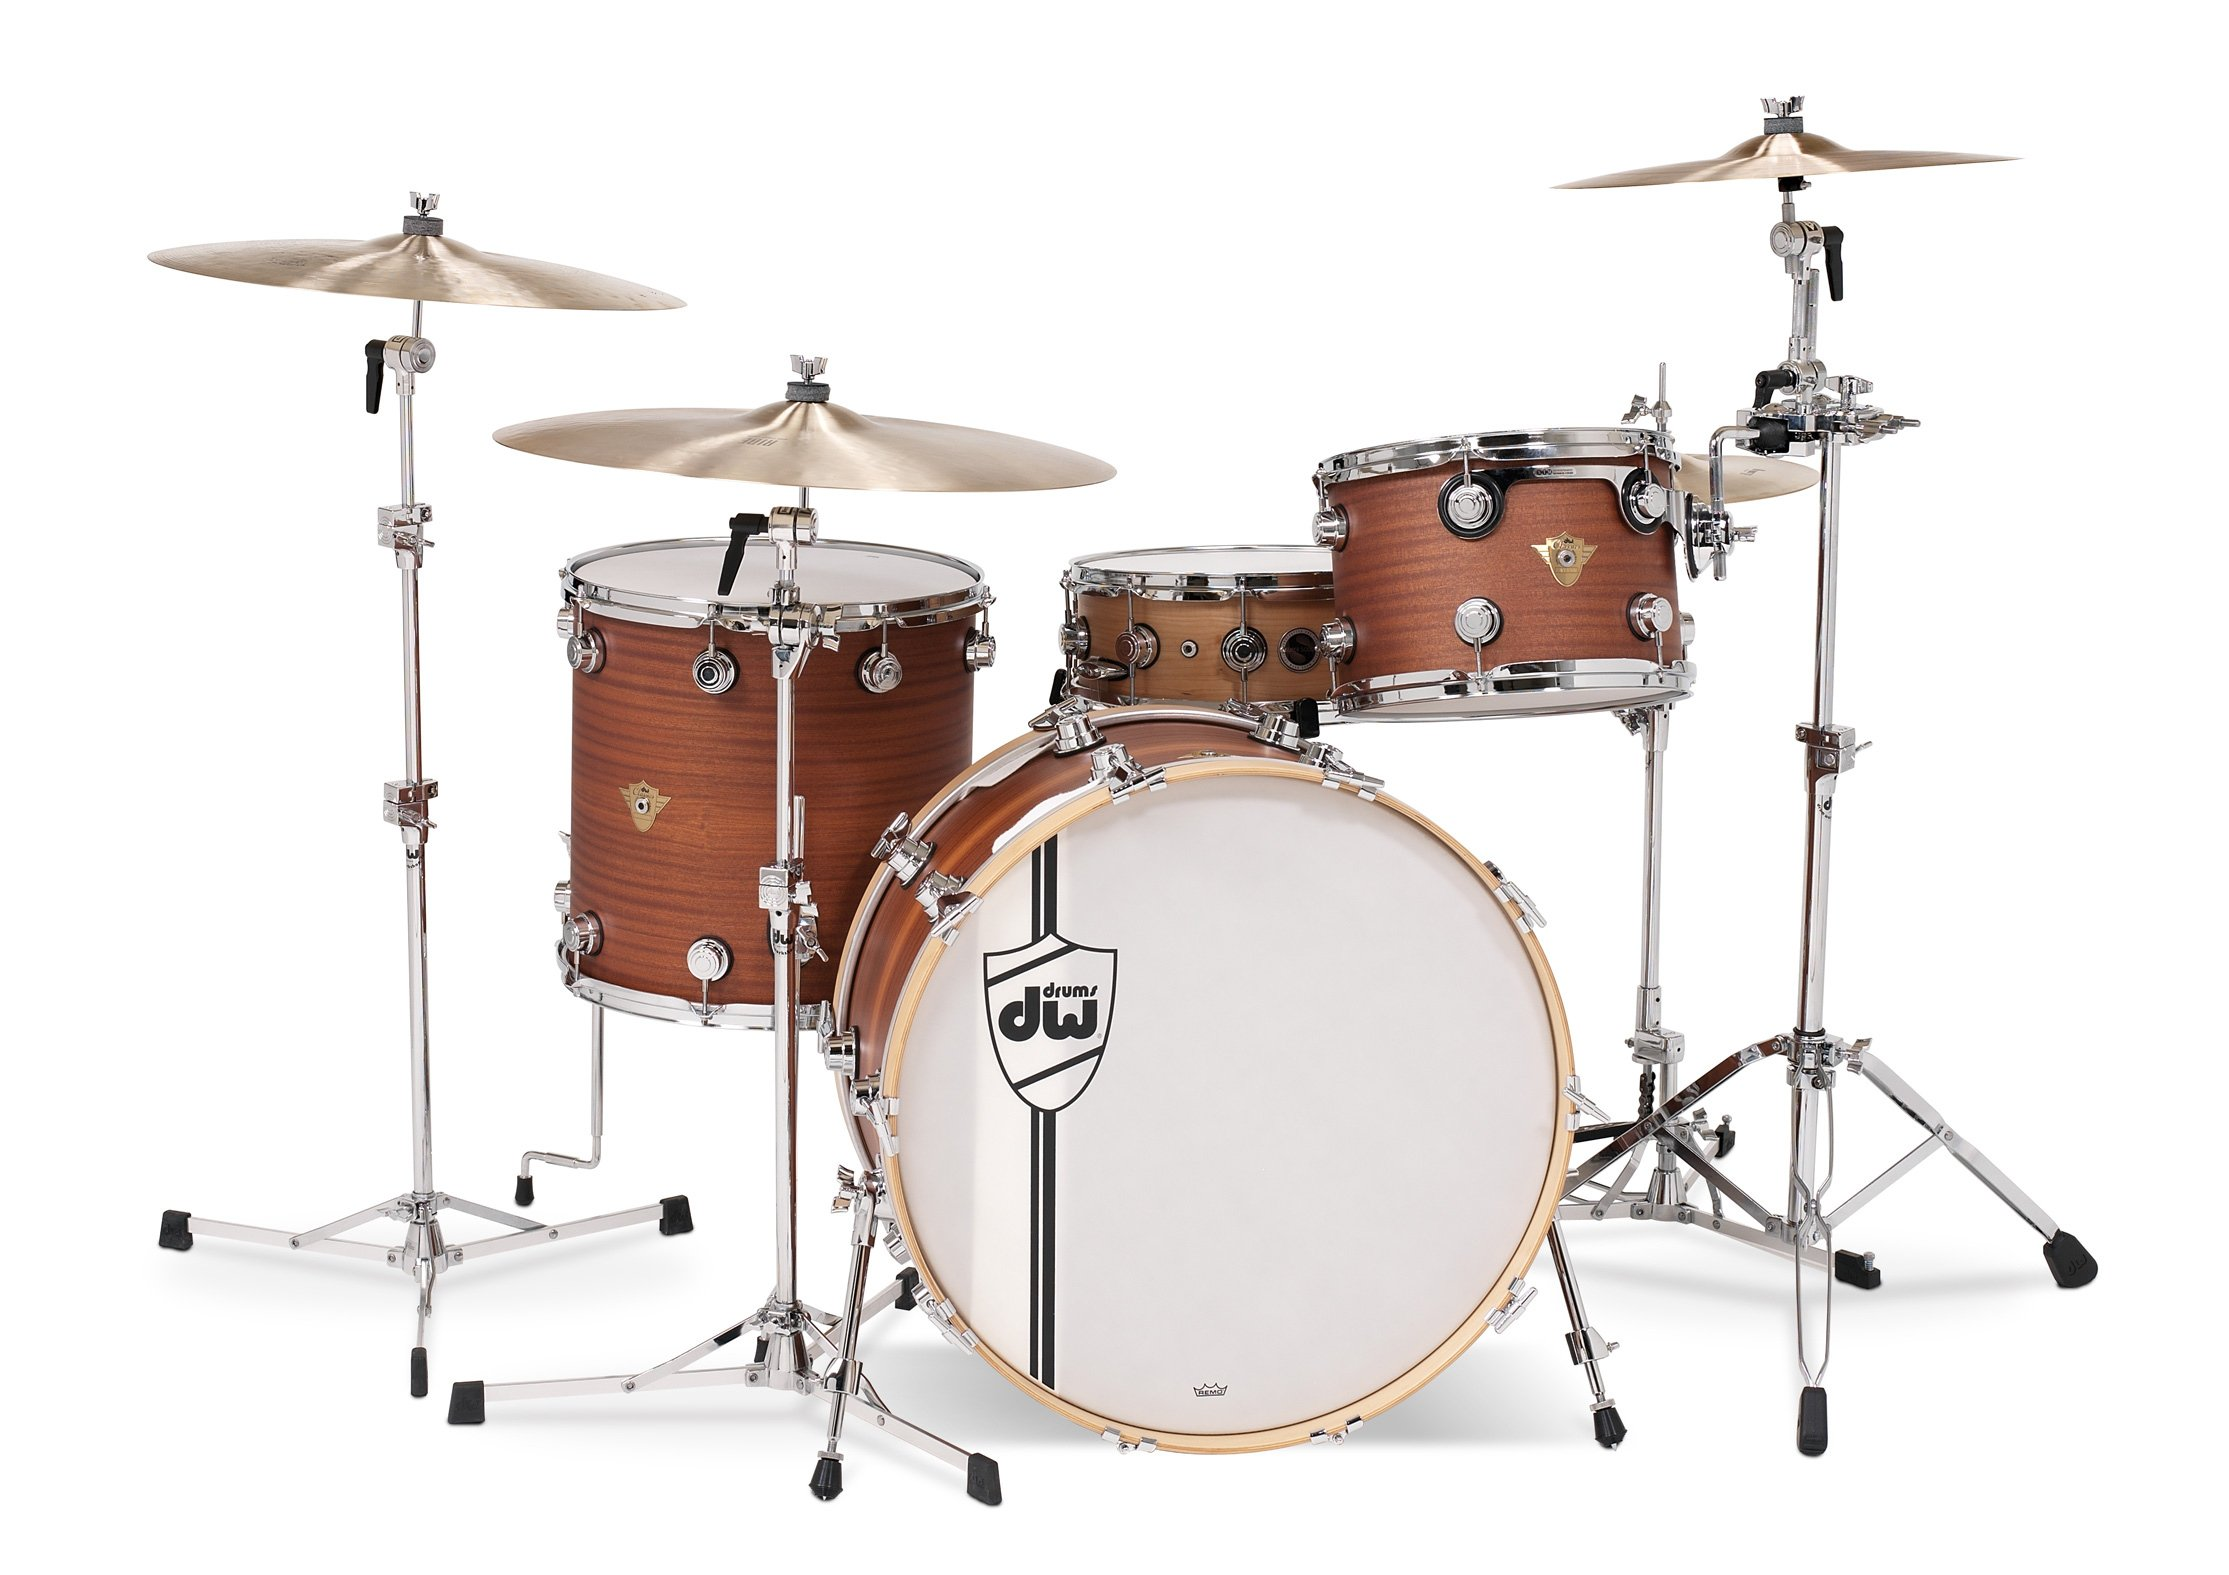 3-Piece Shell Pack in White Satin Finish